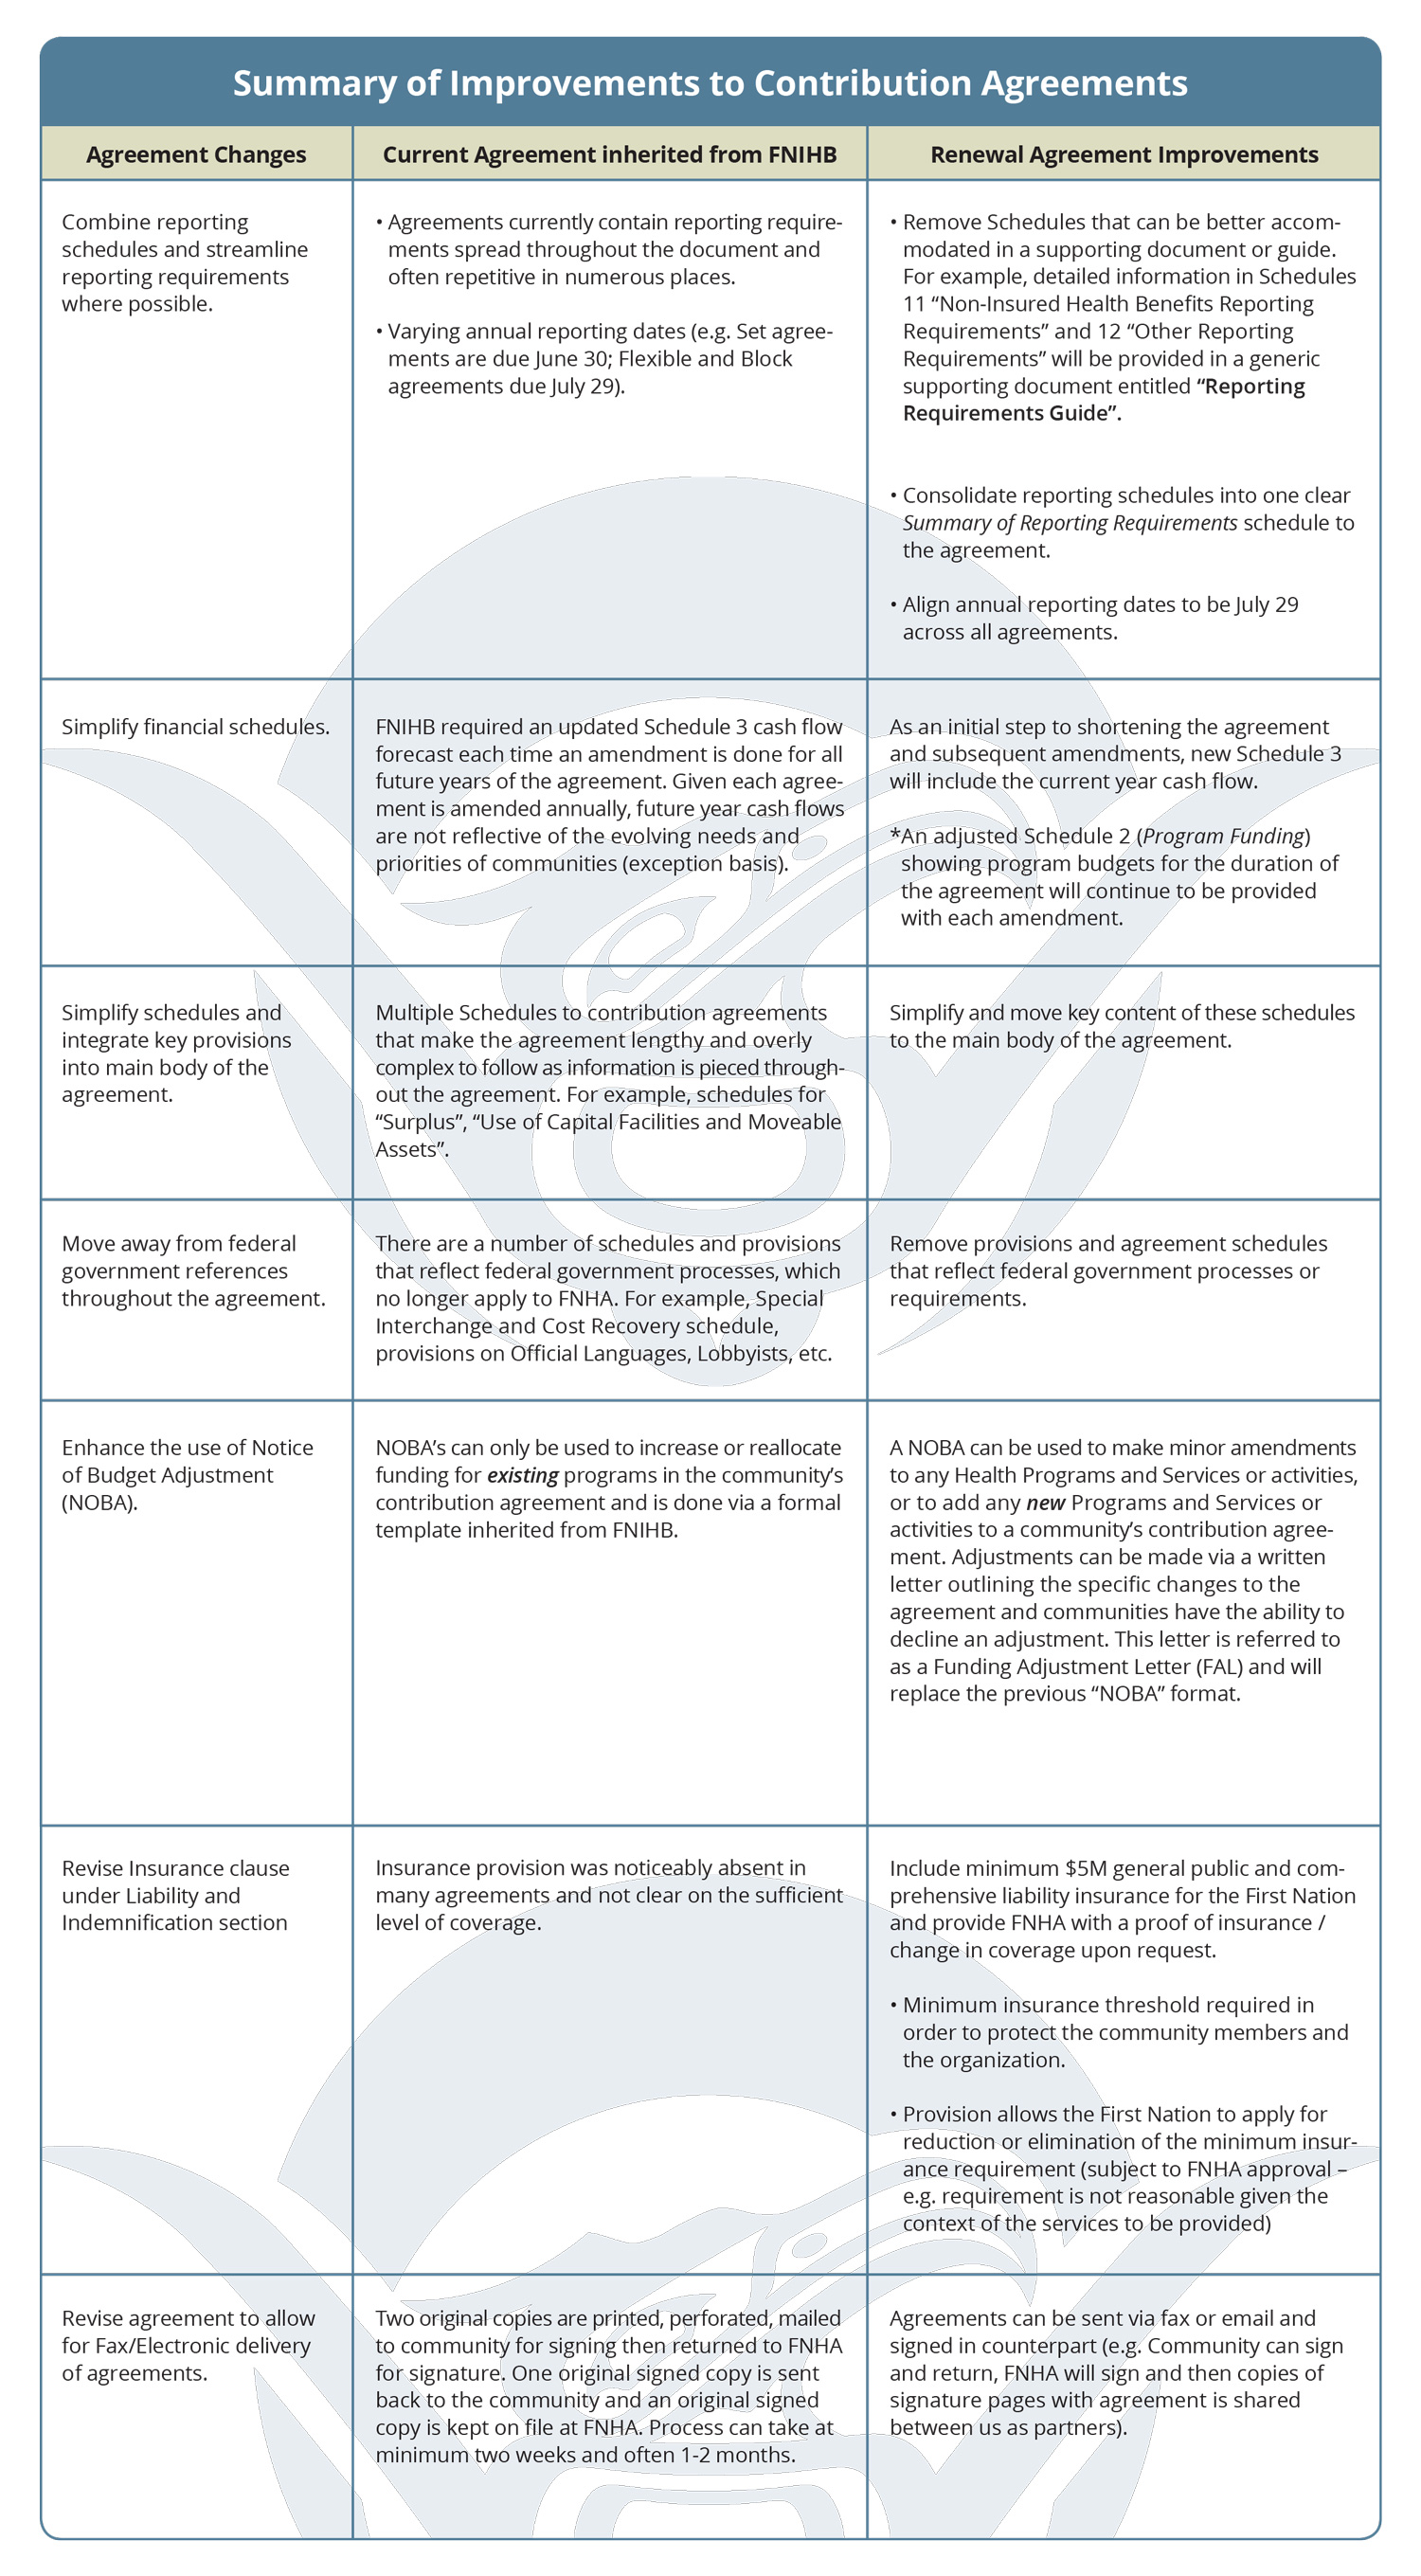 FNHA-Summary-Of-Improvements-To-Contribution-Agreements.jpg